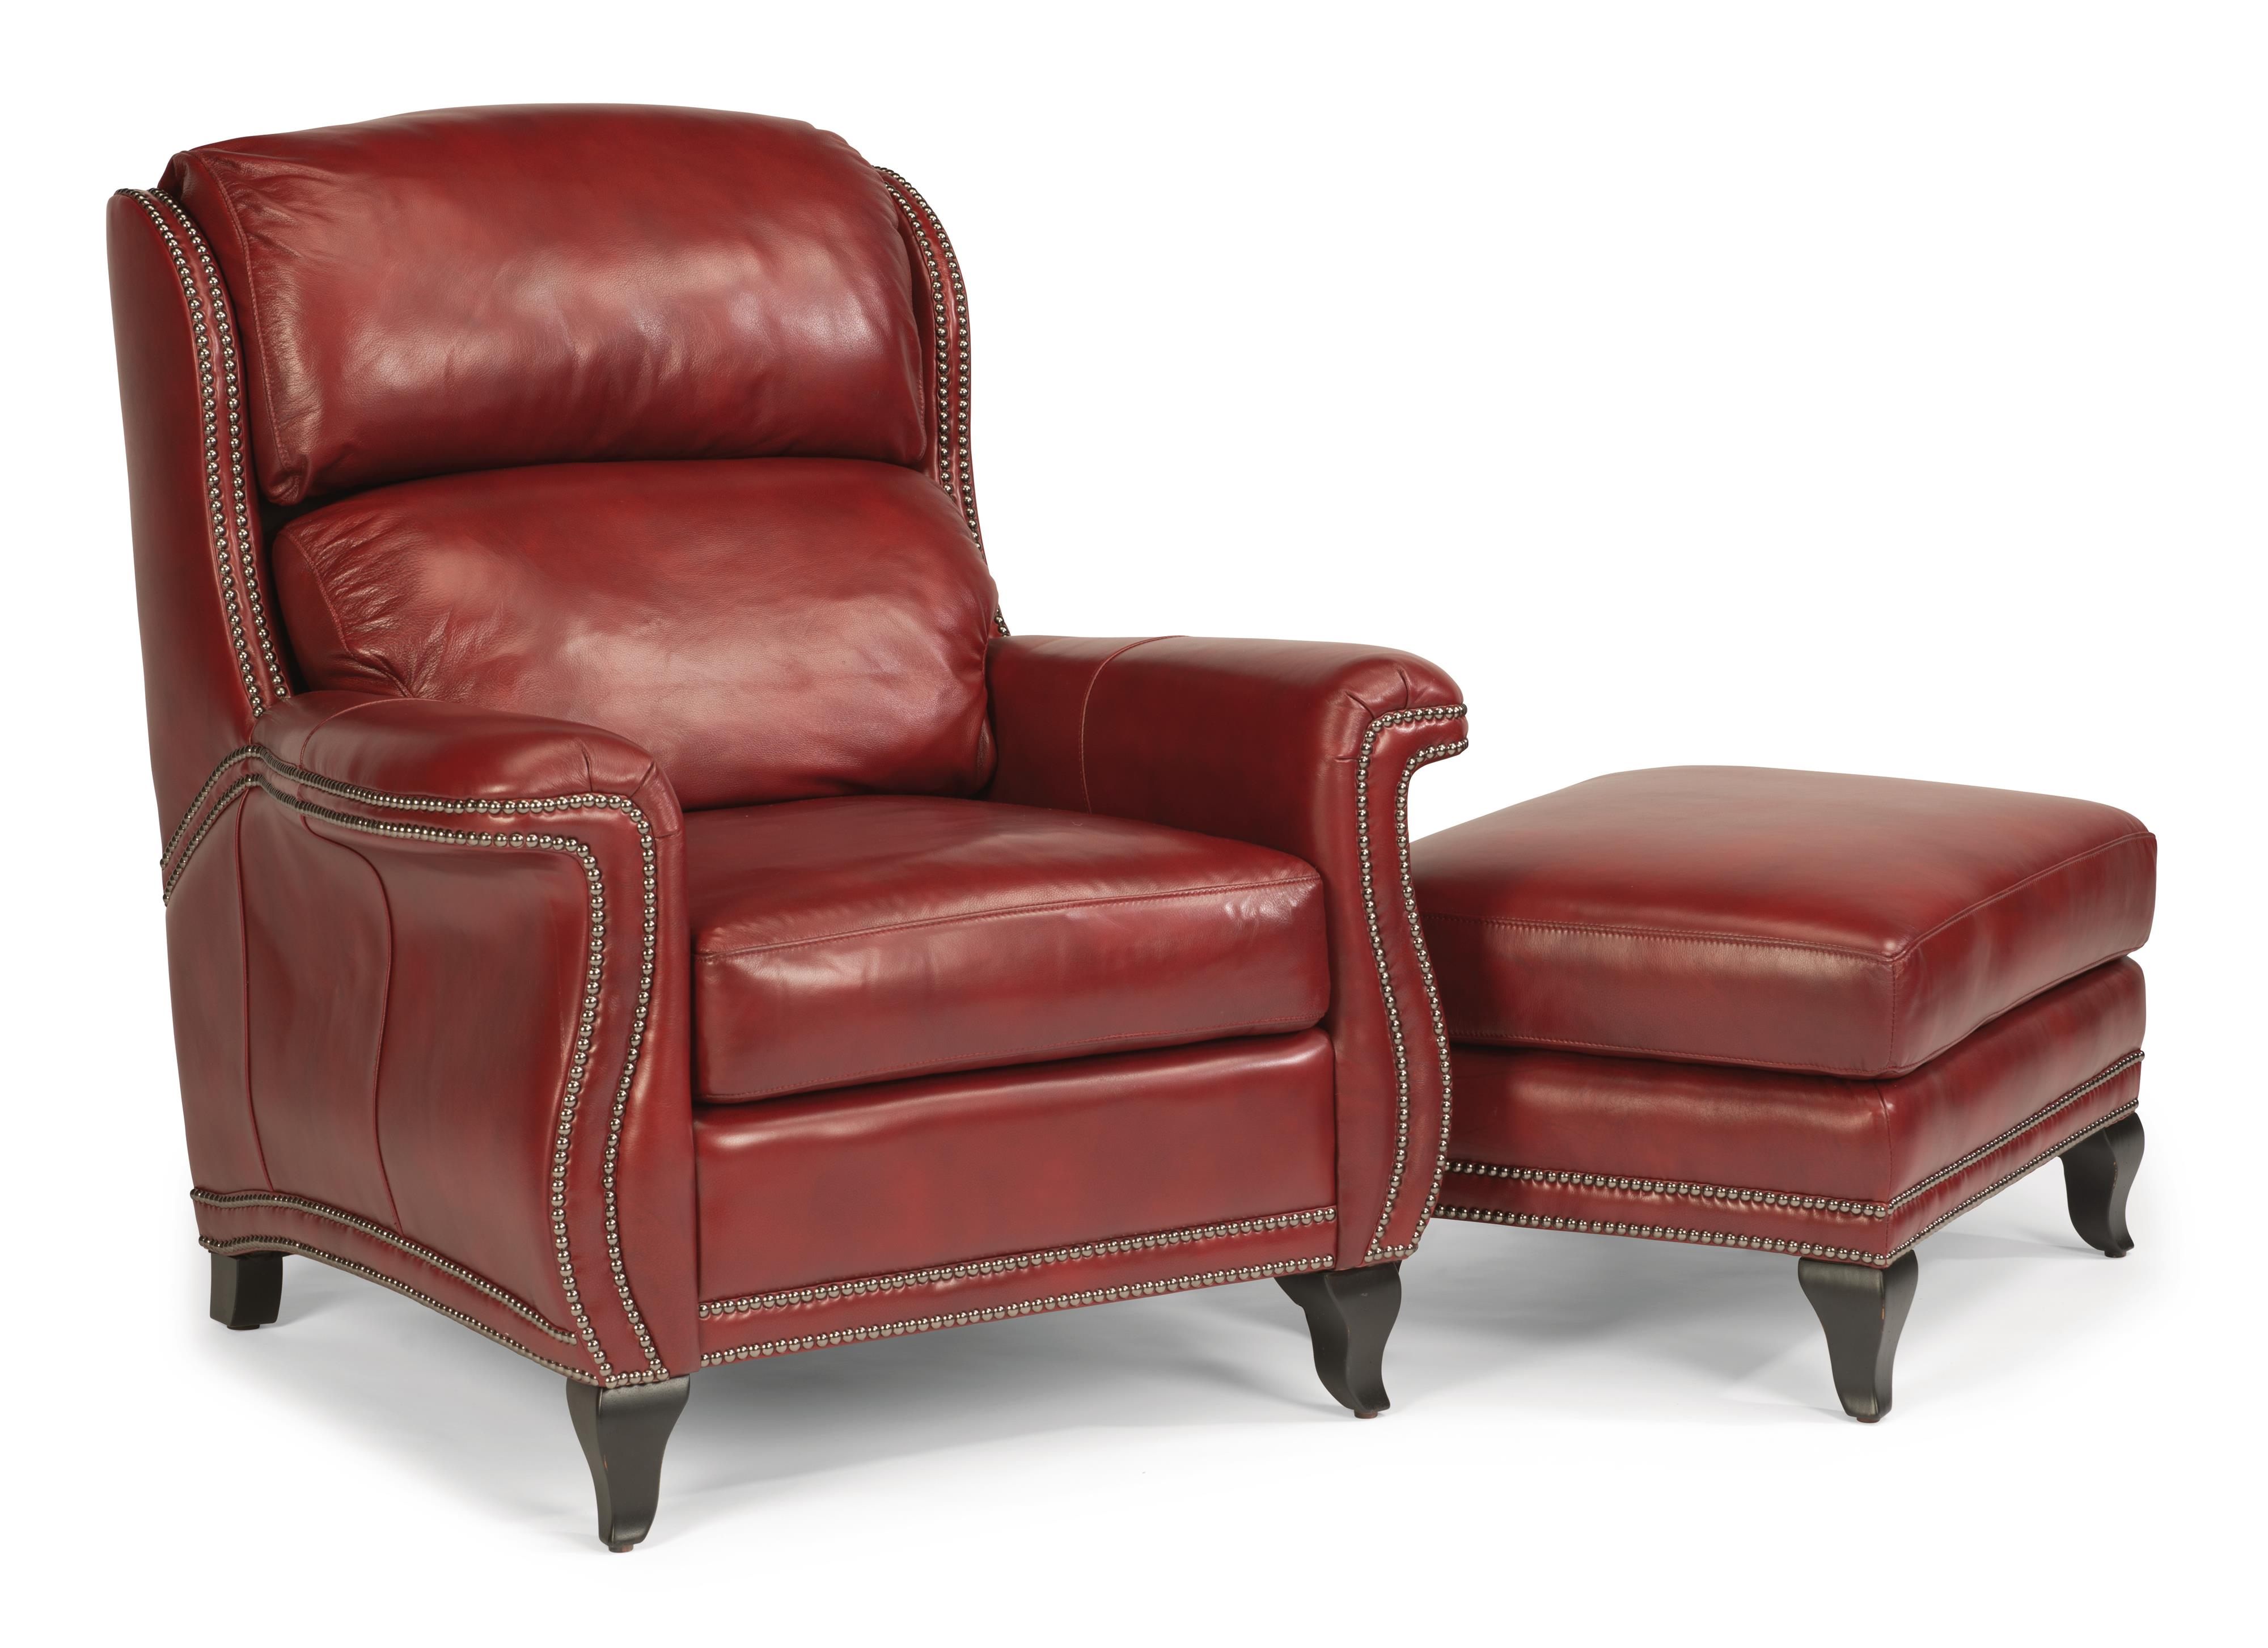 Flexsteel Latitudes-Sting Ray Chair & Ottoman Set - Item Number: 1256-10+1256-08-LSP-55